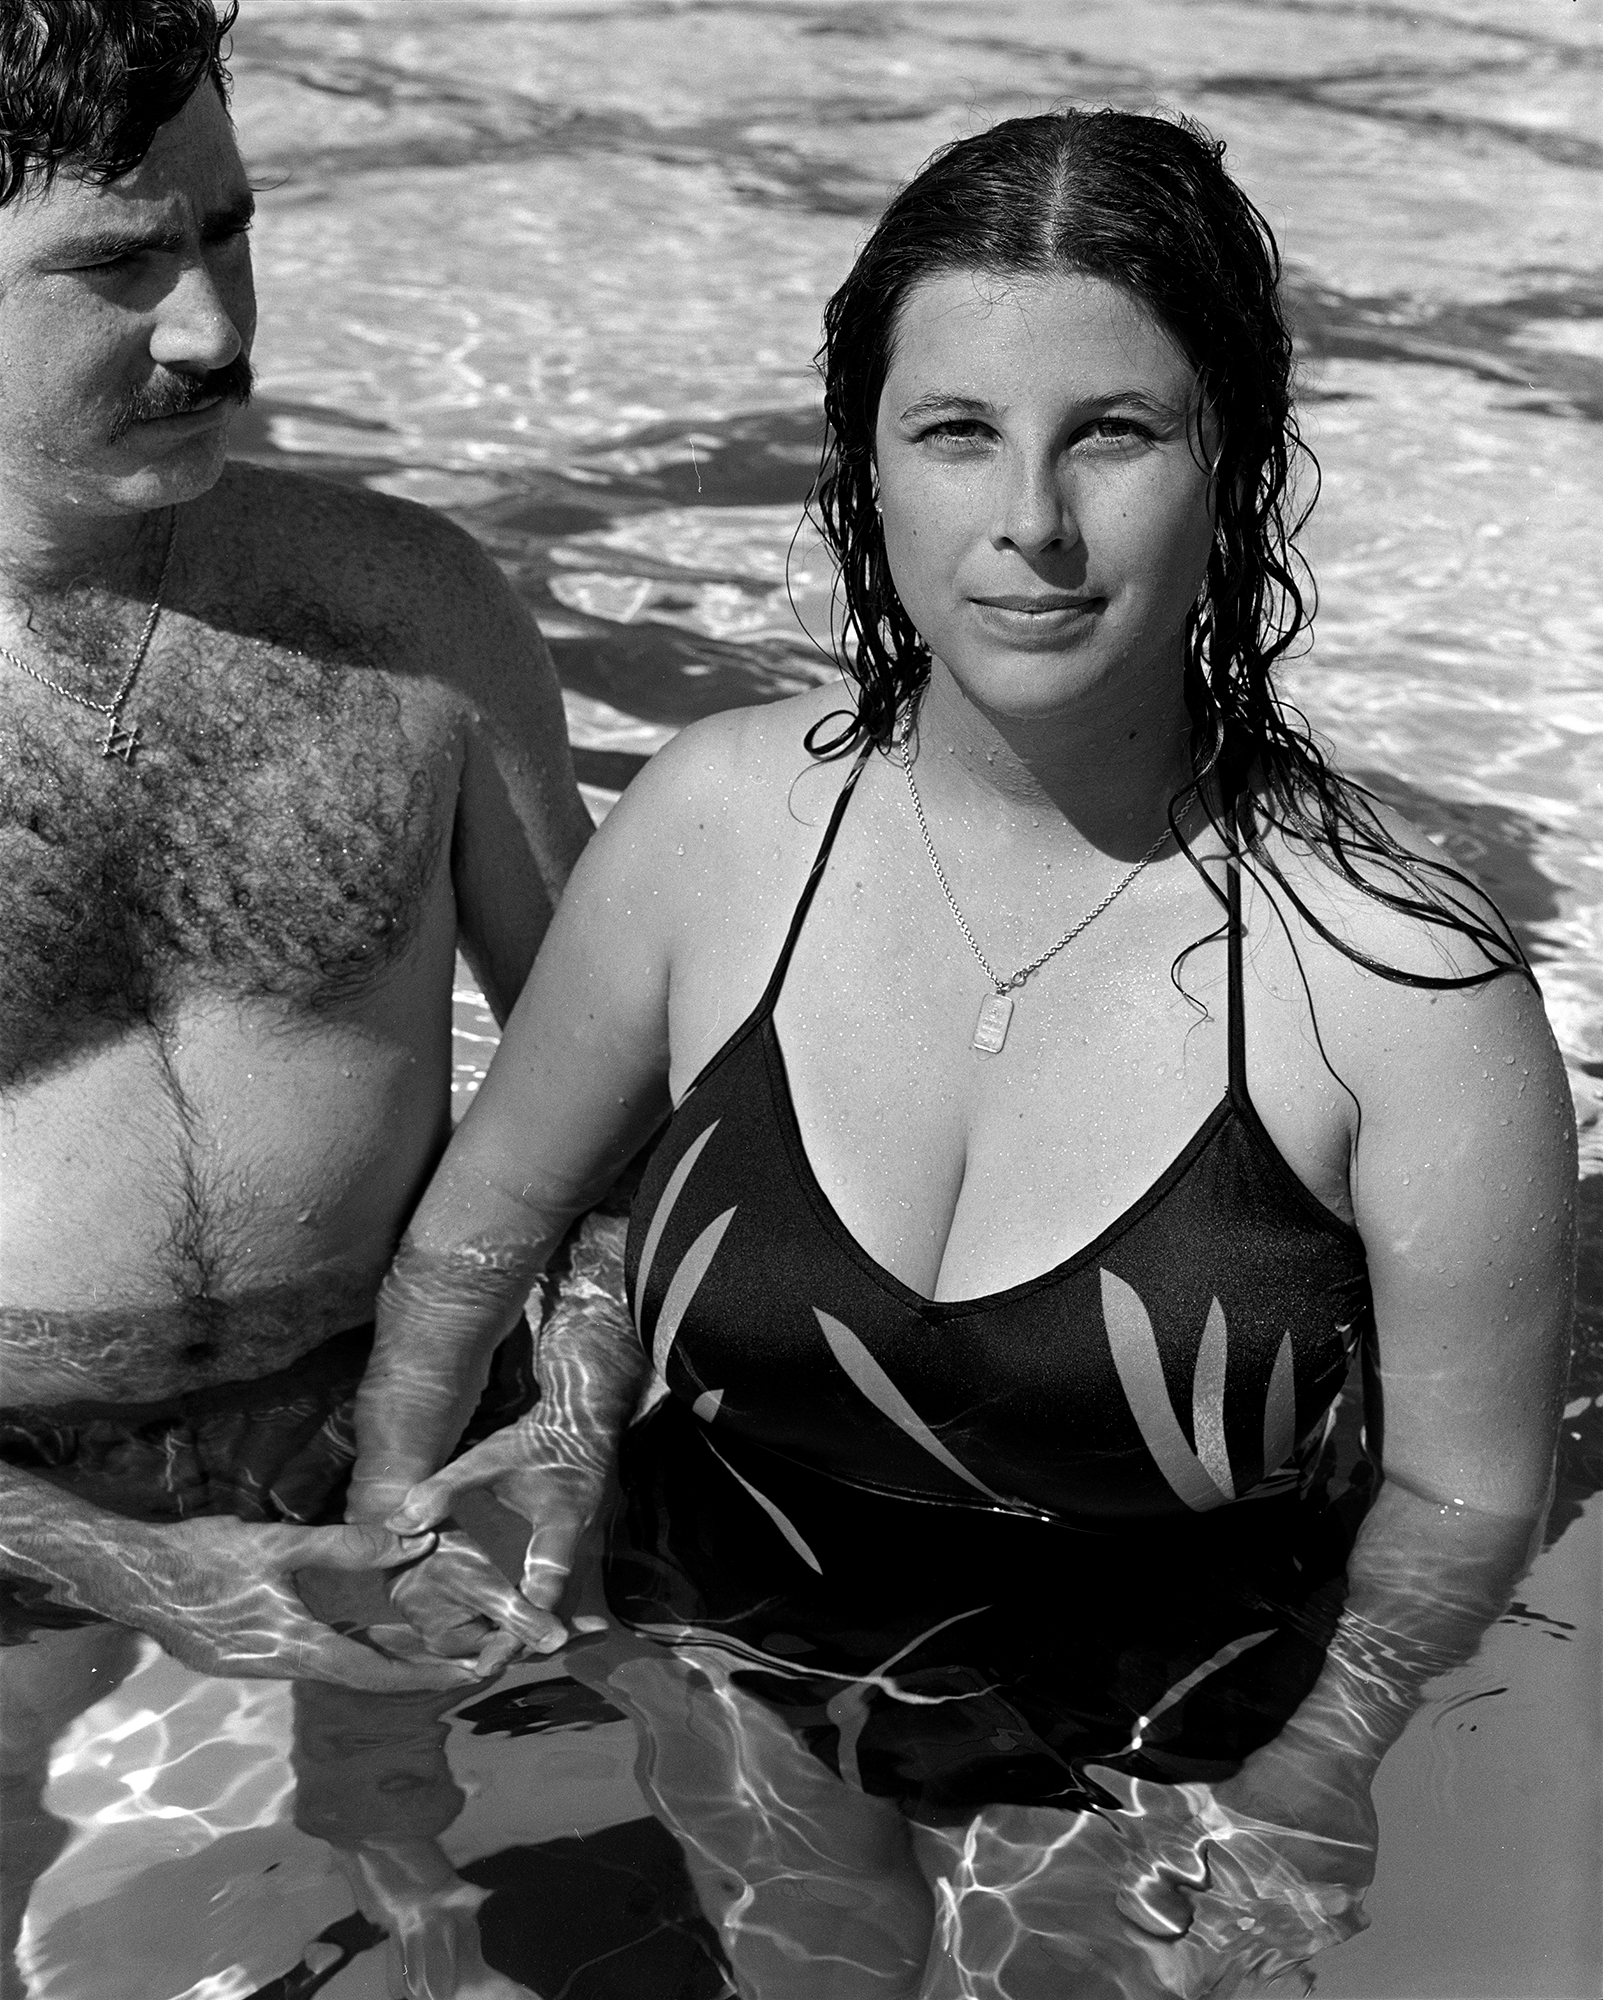 Woman with husband, JCC pool, 1981